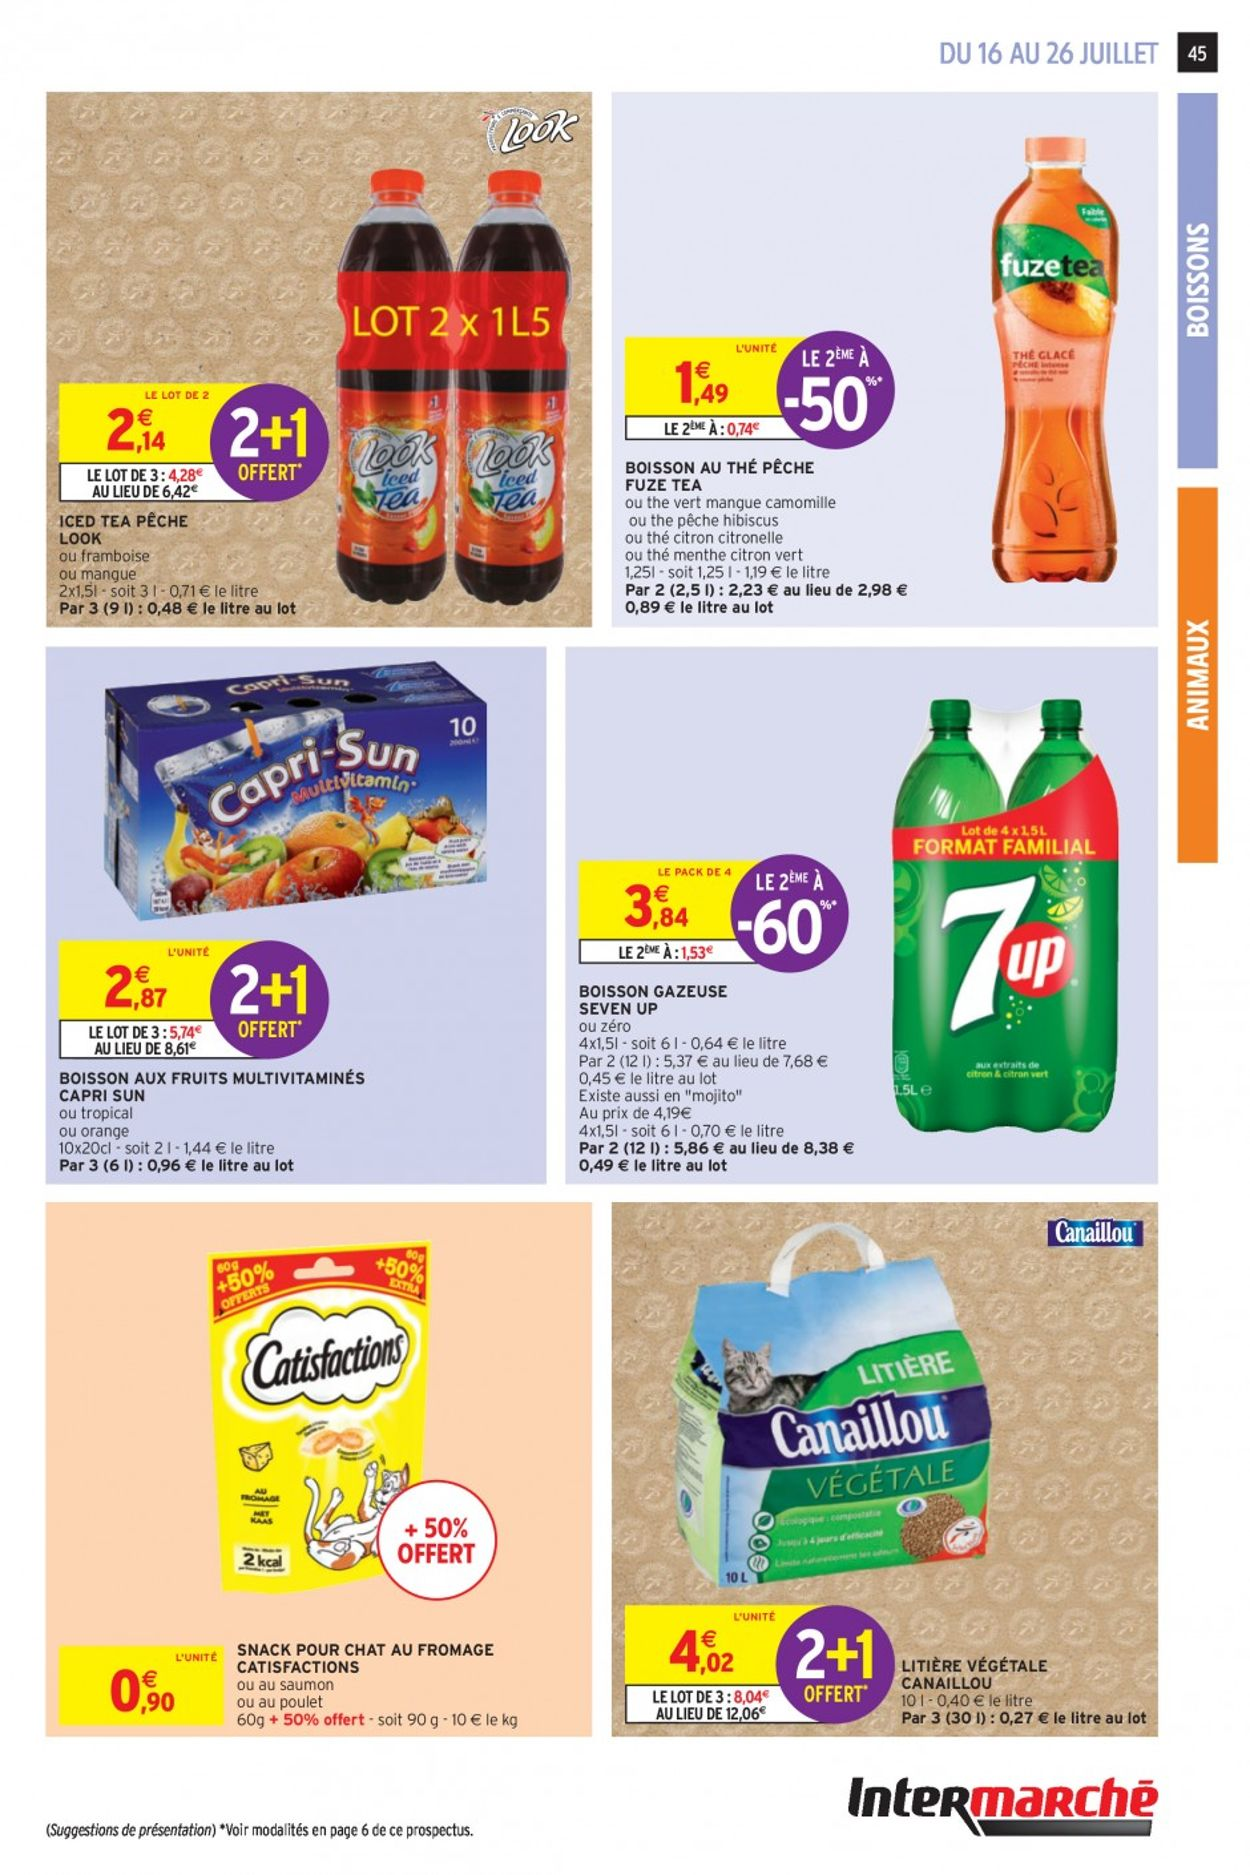 Intermarché Catalogue - 16.07-26.07.2020 (Page 43)